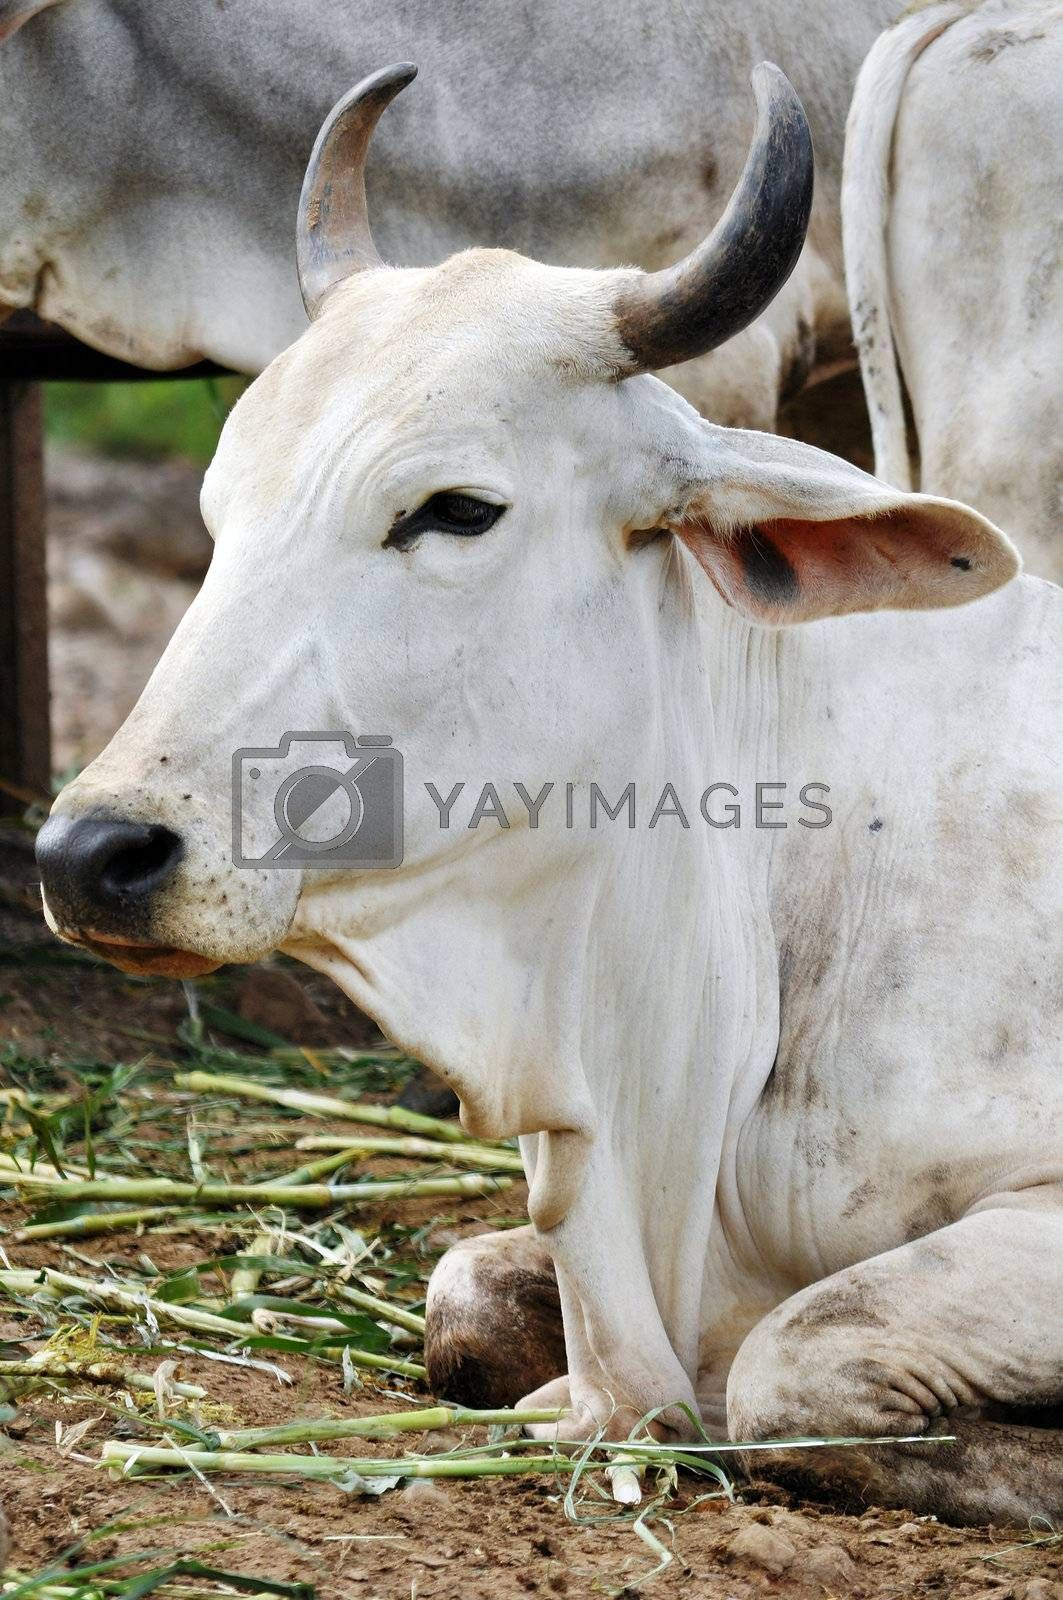 The American Brahman has a distinct large hump over the top of the shoulder and neck, and a loose flap of skin (dewlap) hanging from the neck.